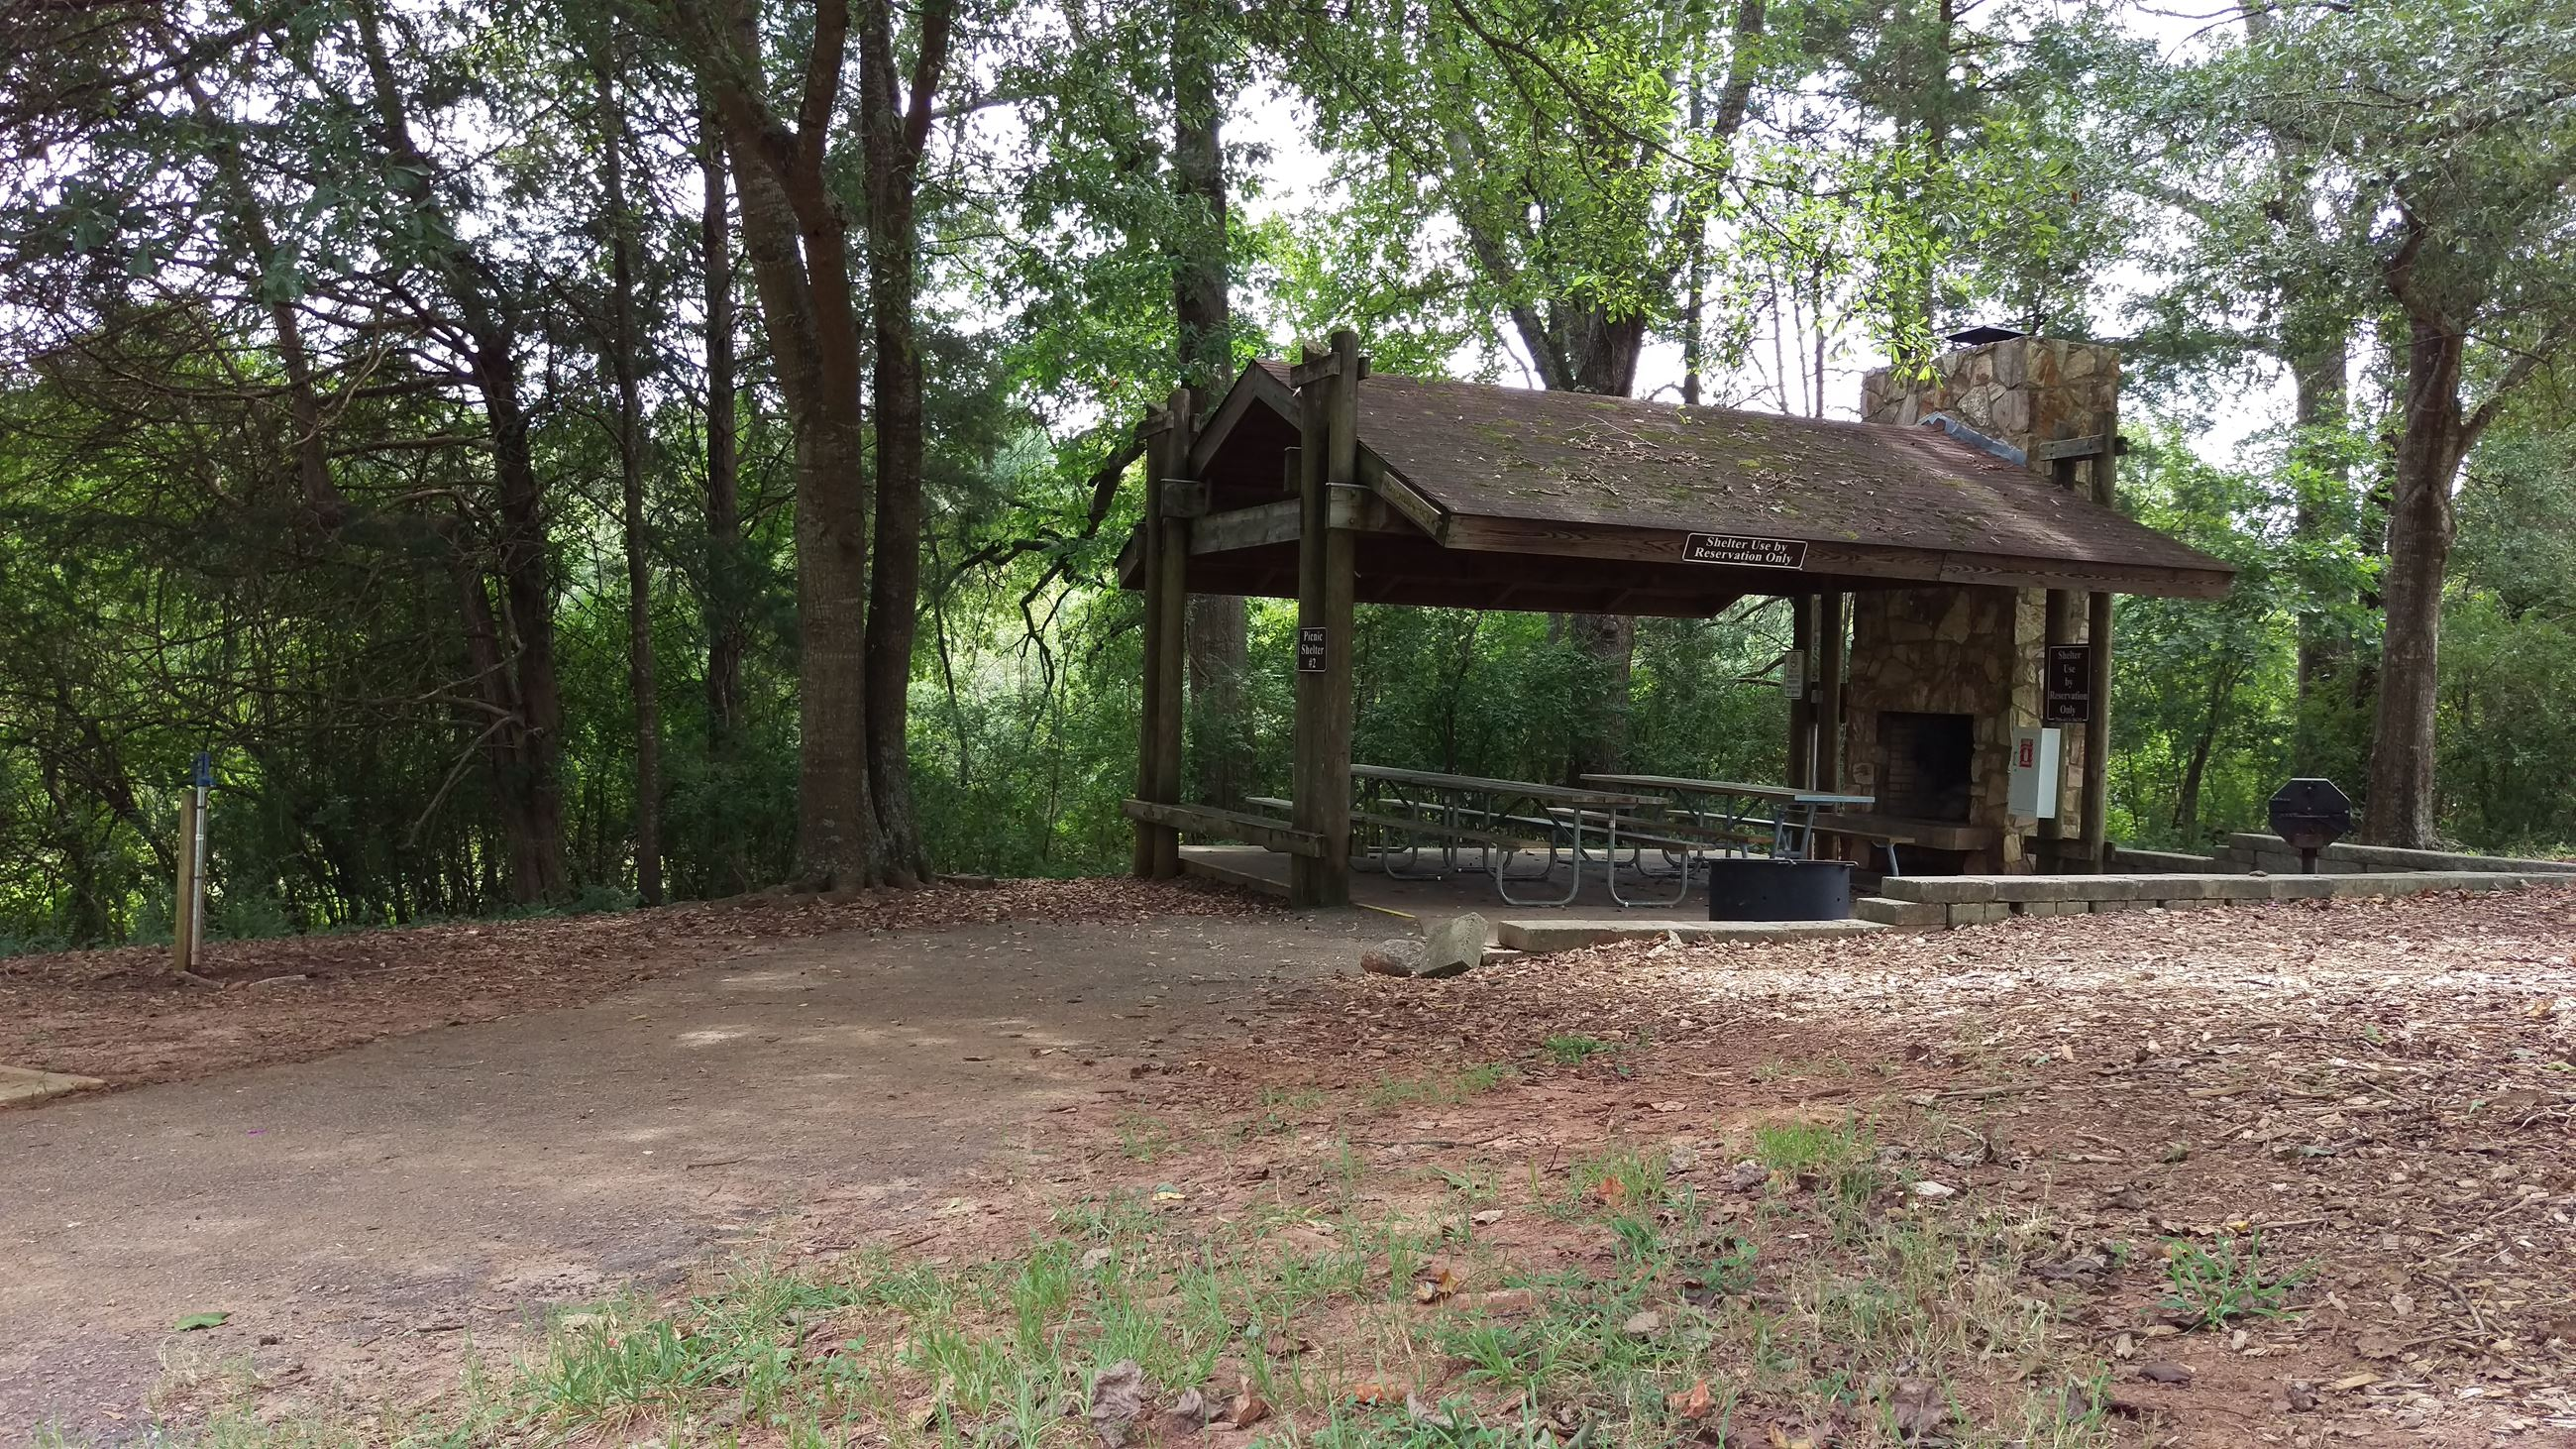 Photo of Picnic Shelter 2 at Sandy Creek Park.